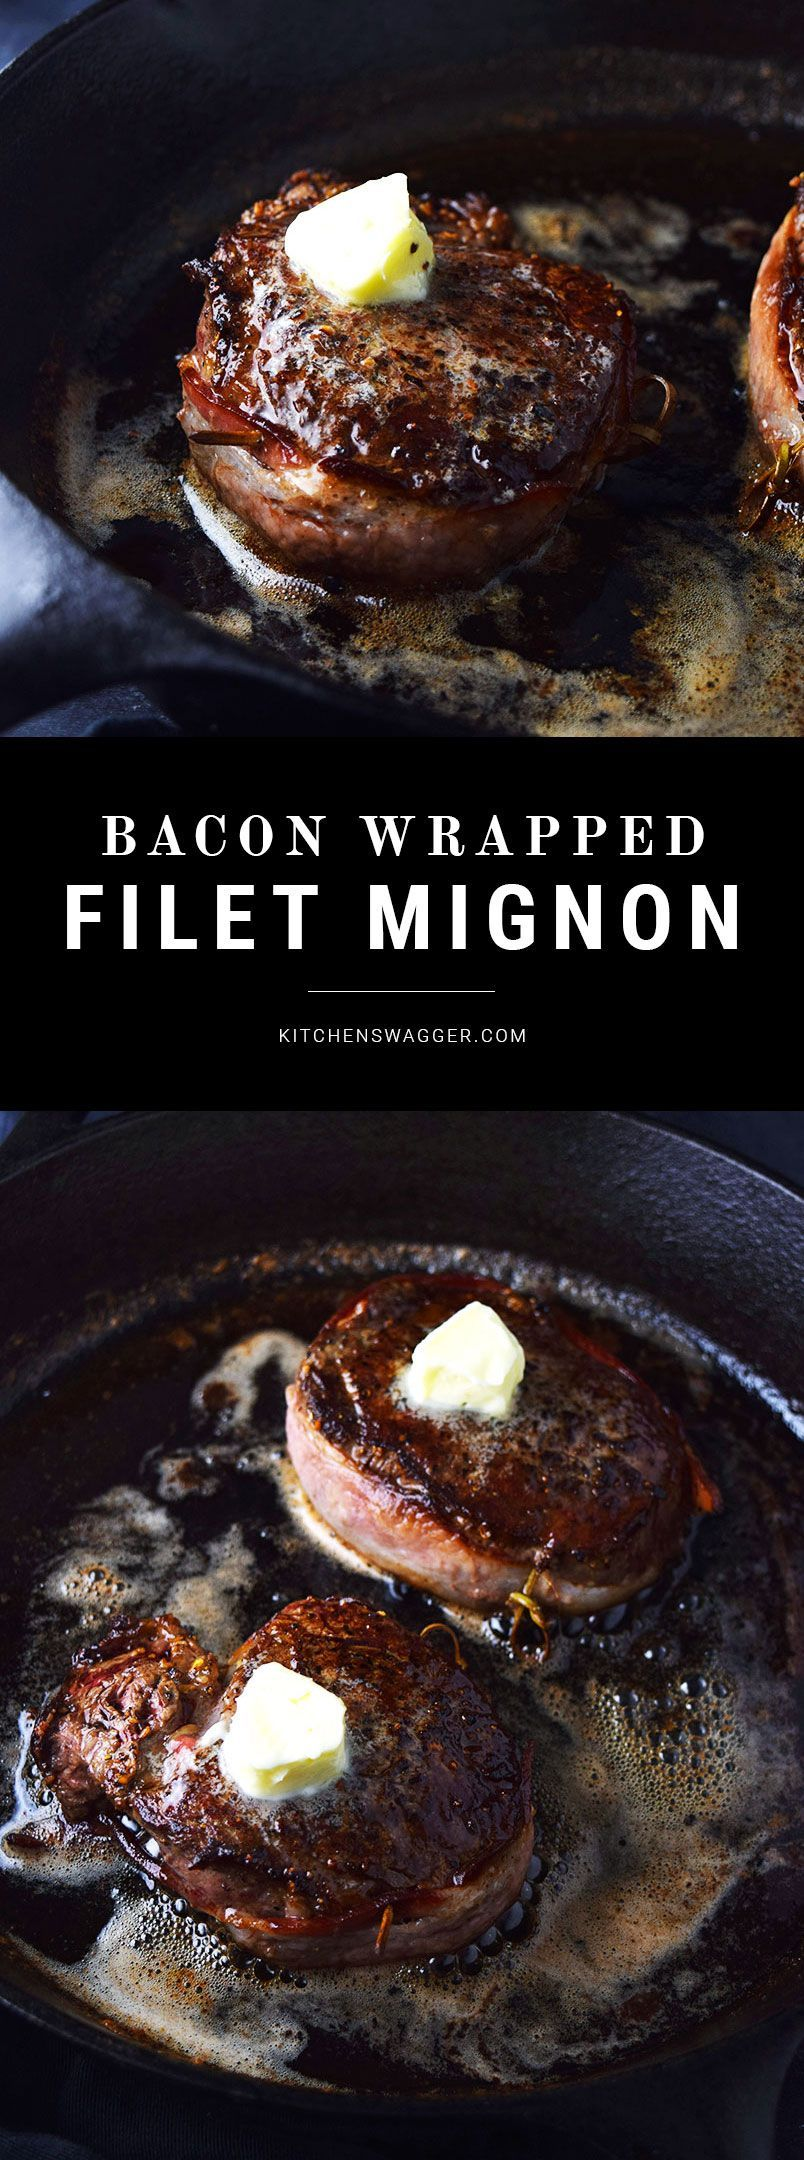 Baconwrapped filet mignon with truffle butter recipe